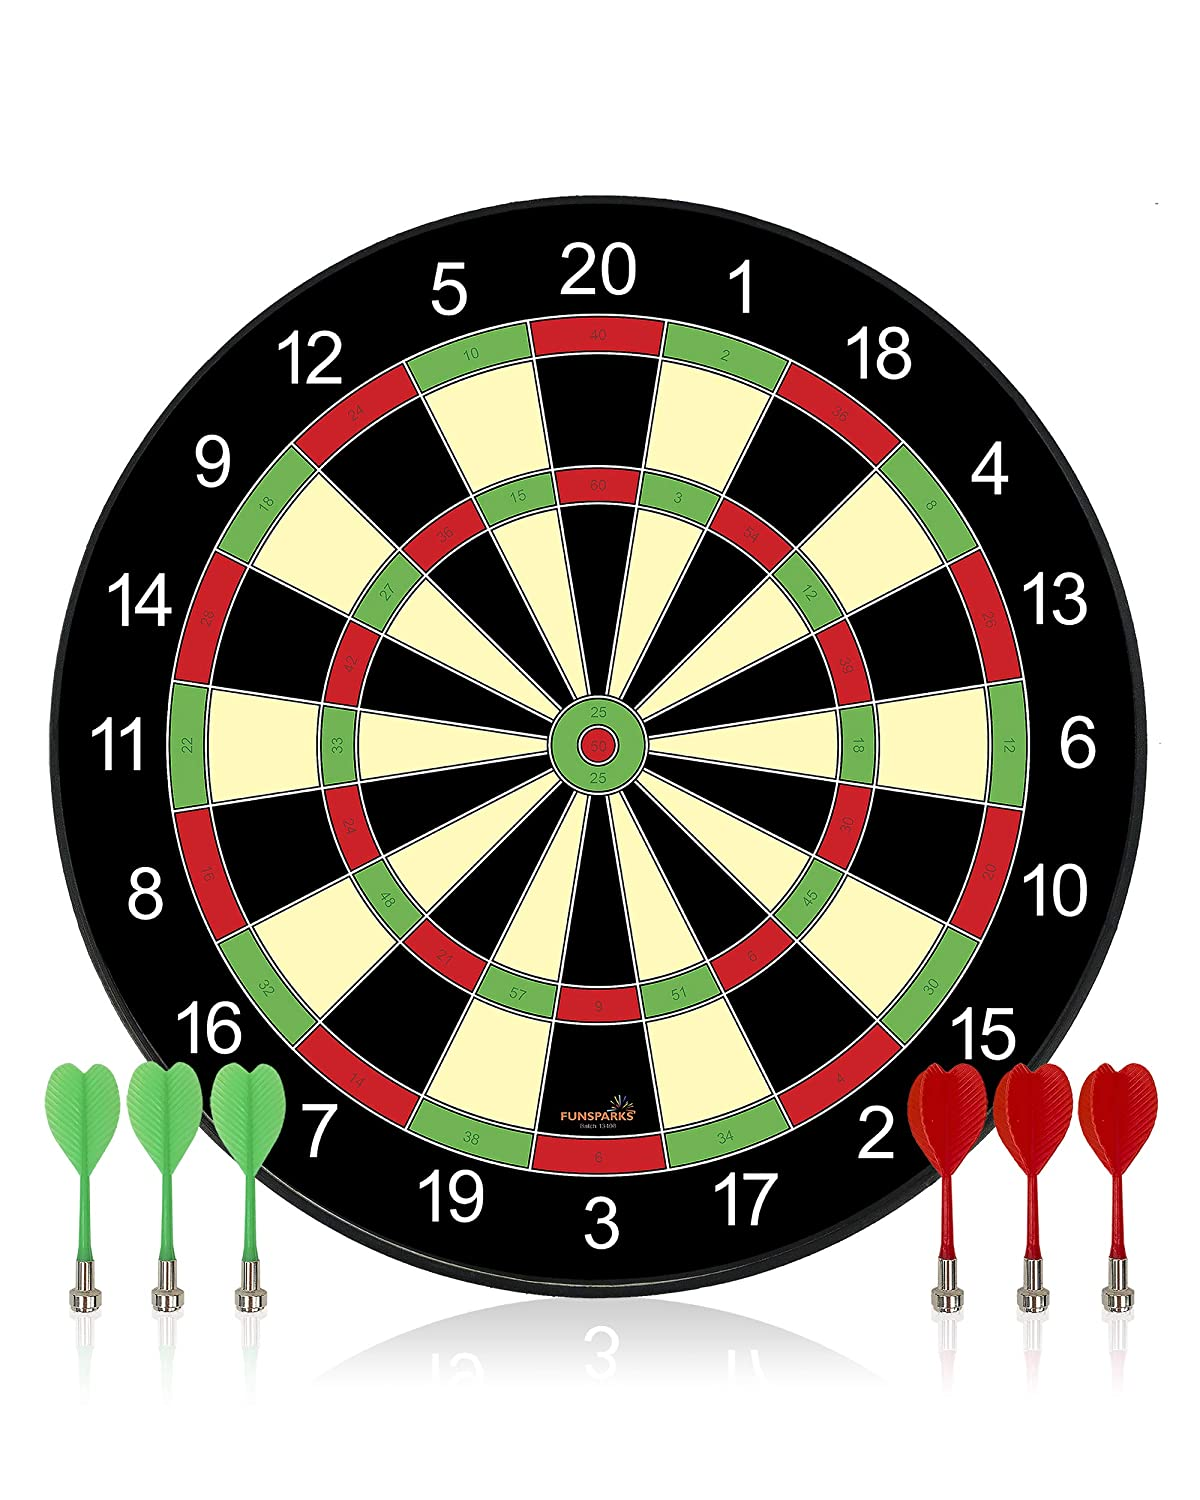 Magnetic Dart Board Game - Full Set with 3 Green and 3 Red Darts